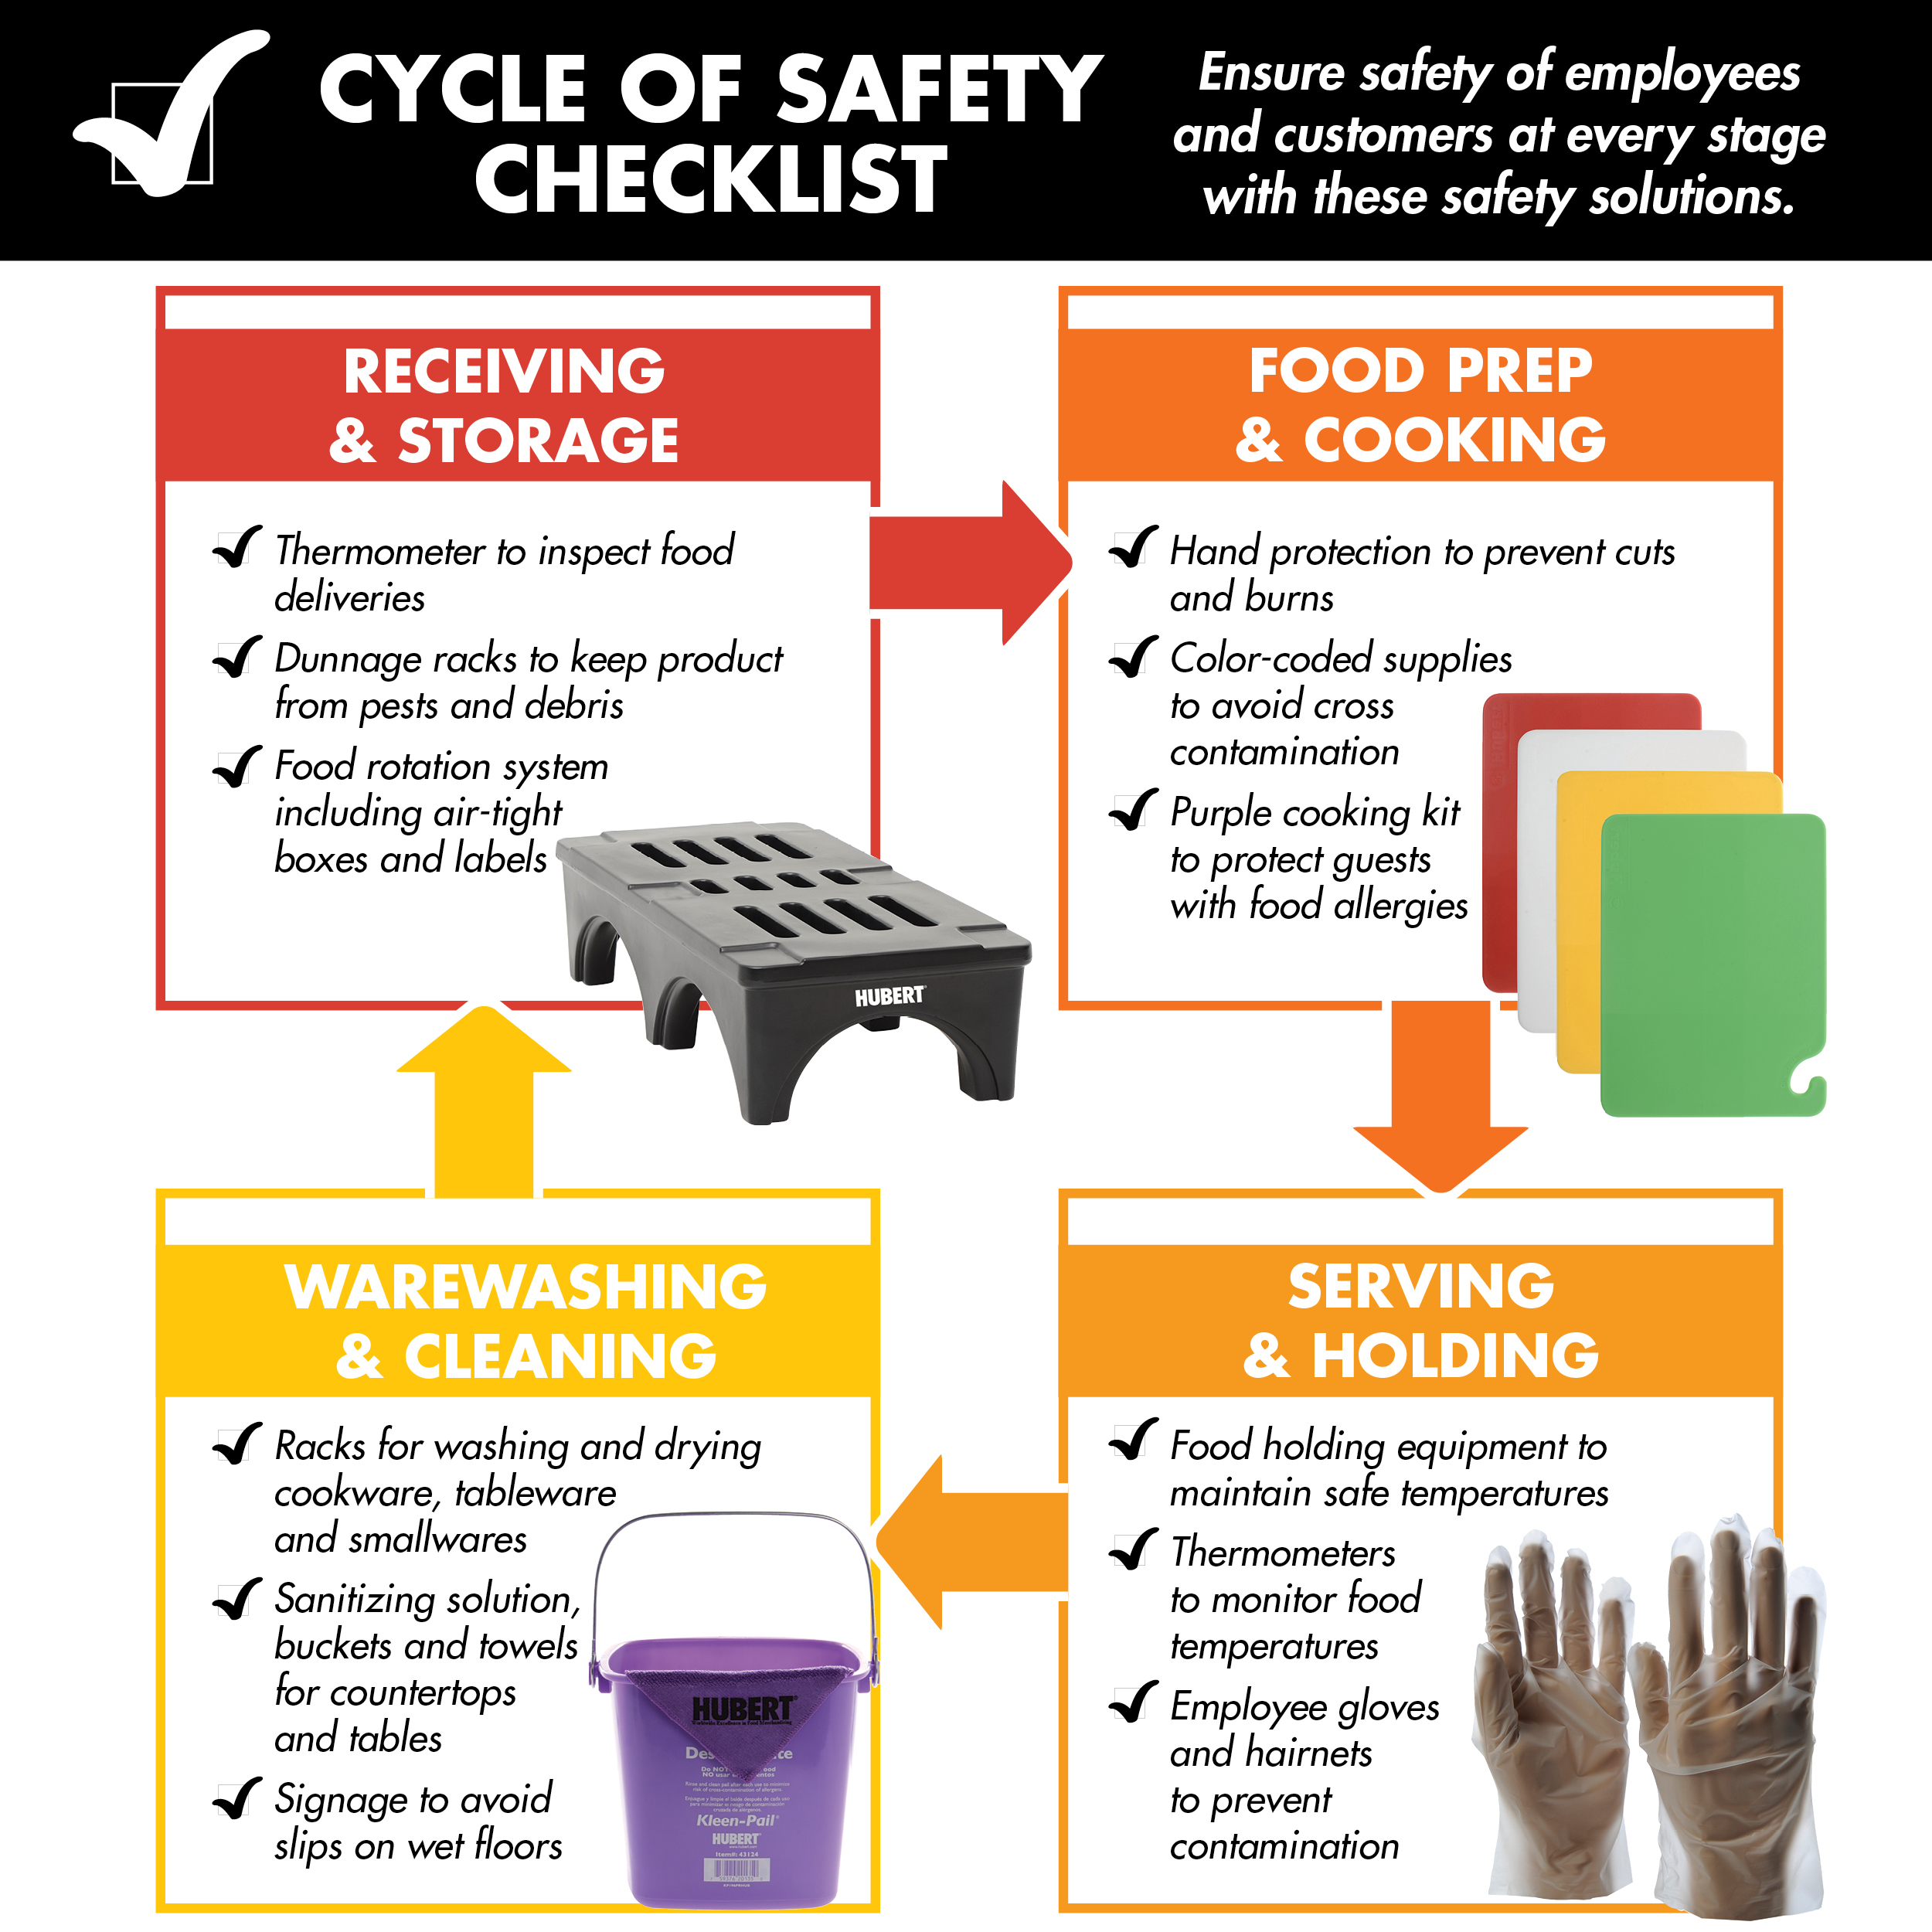 Cycle of Safety